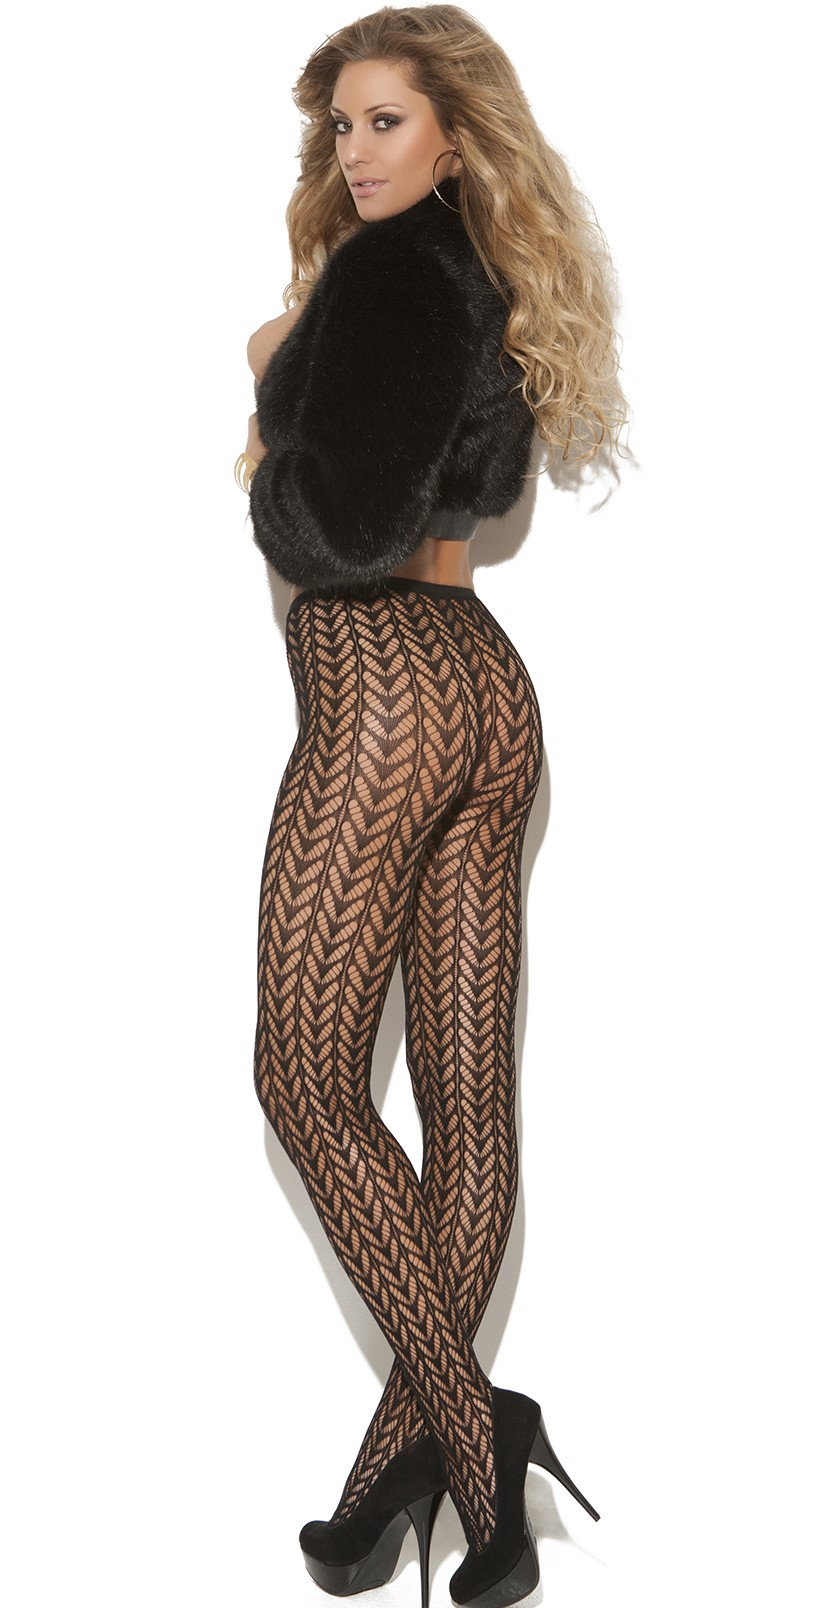 Black Vivace Pantyhose with Feather Design